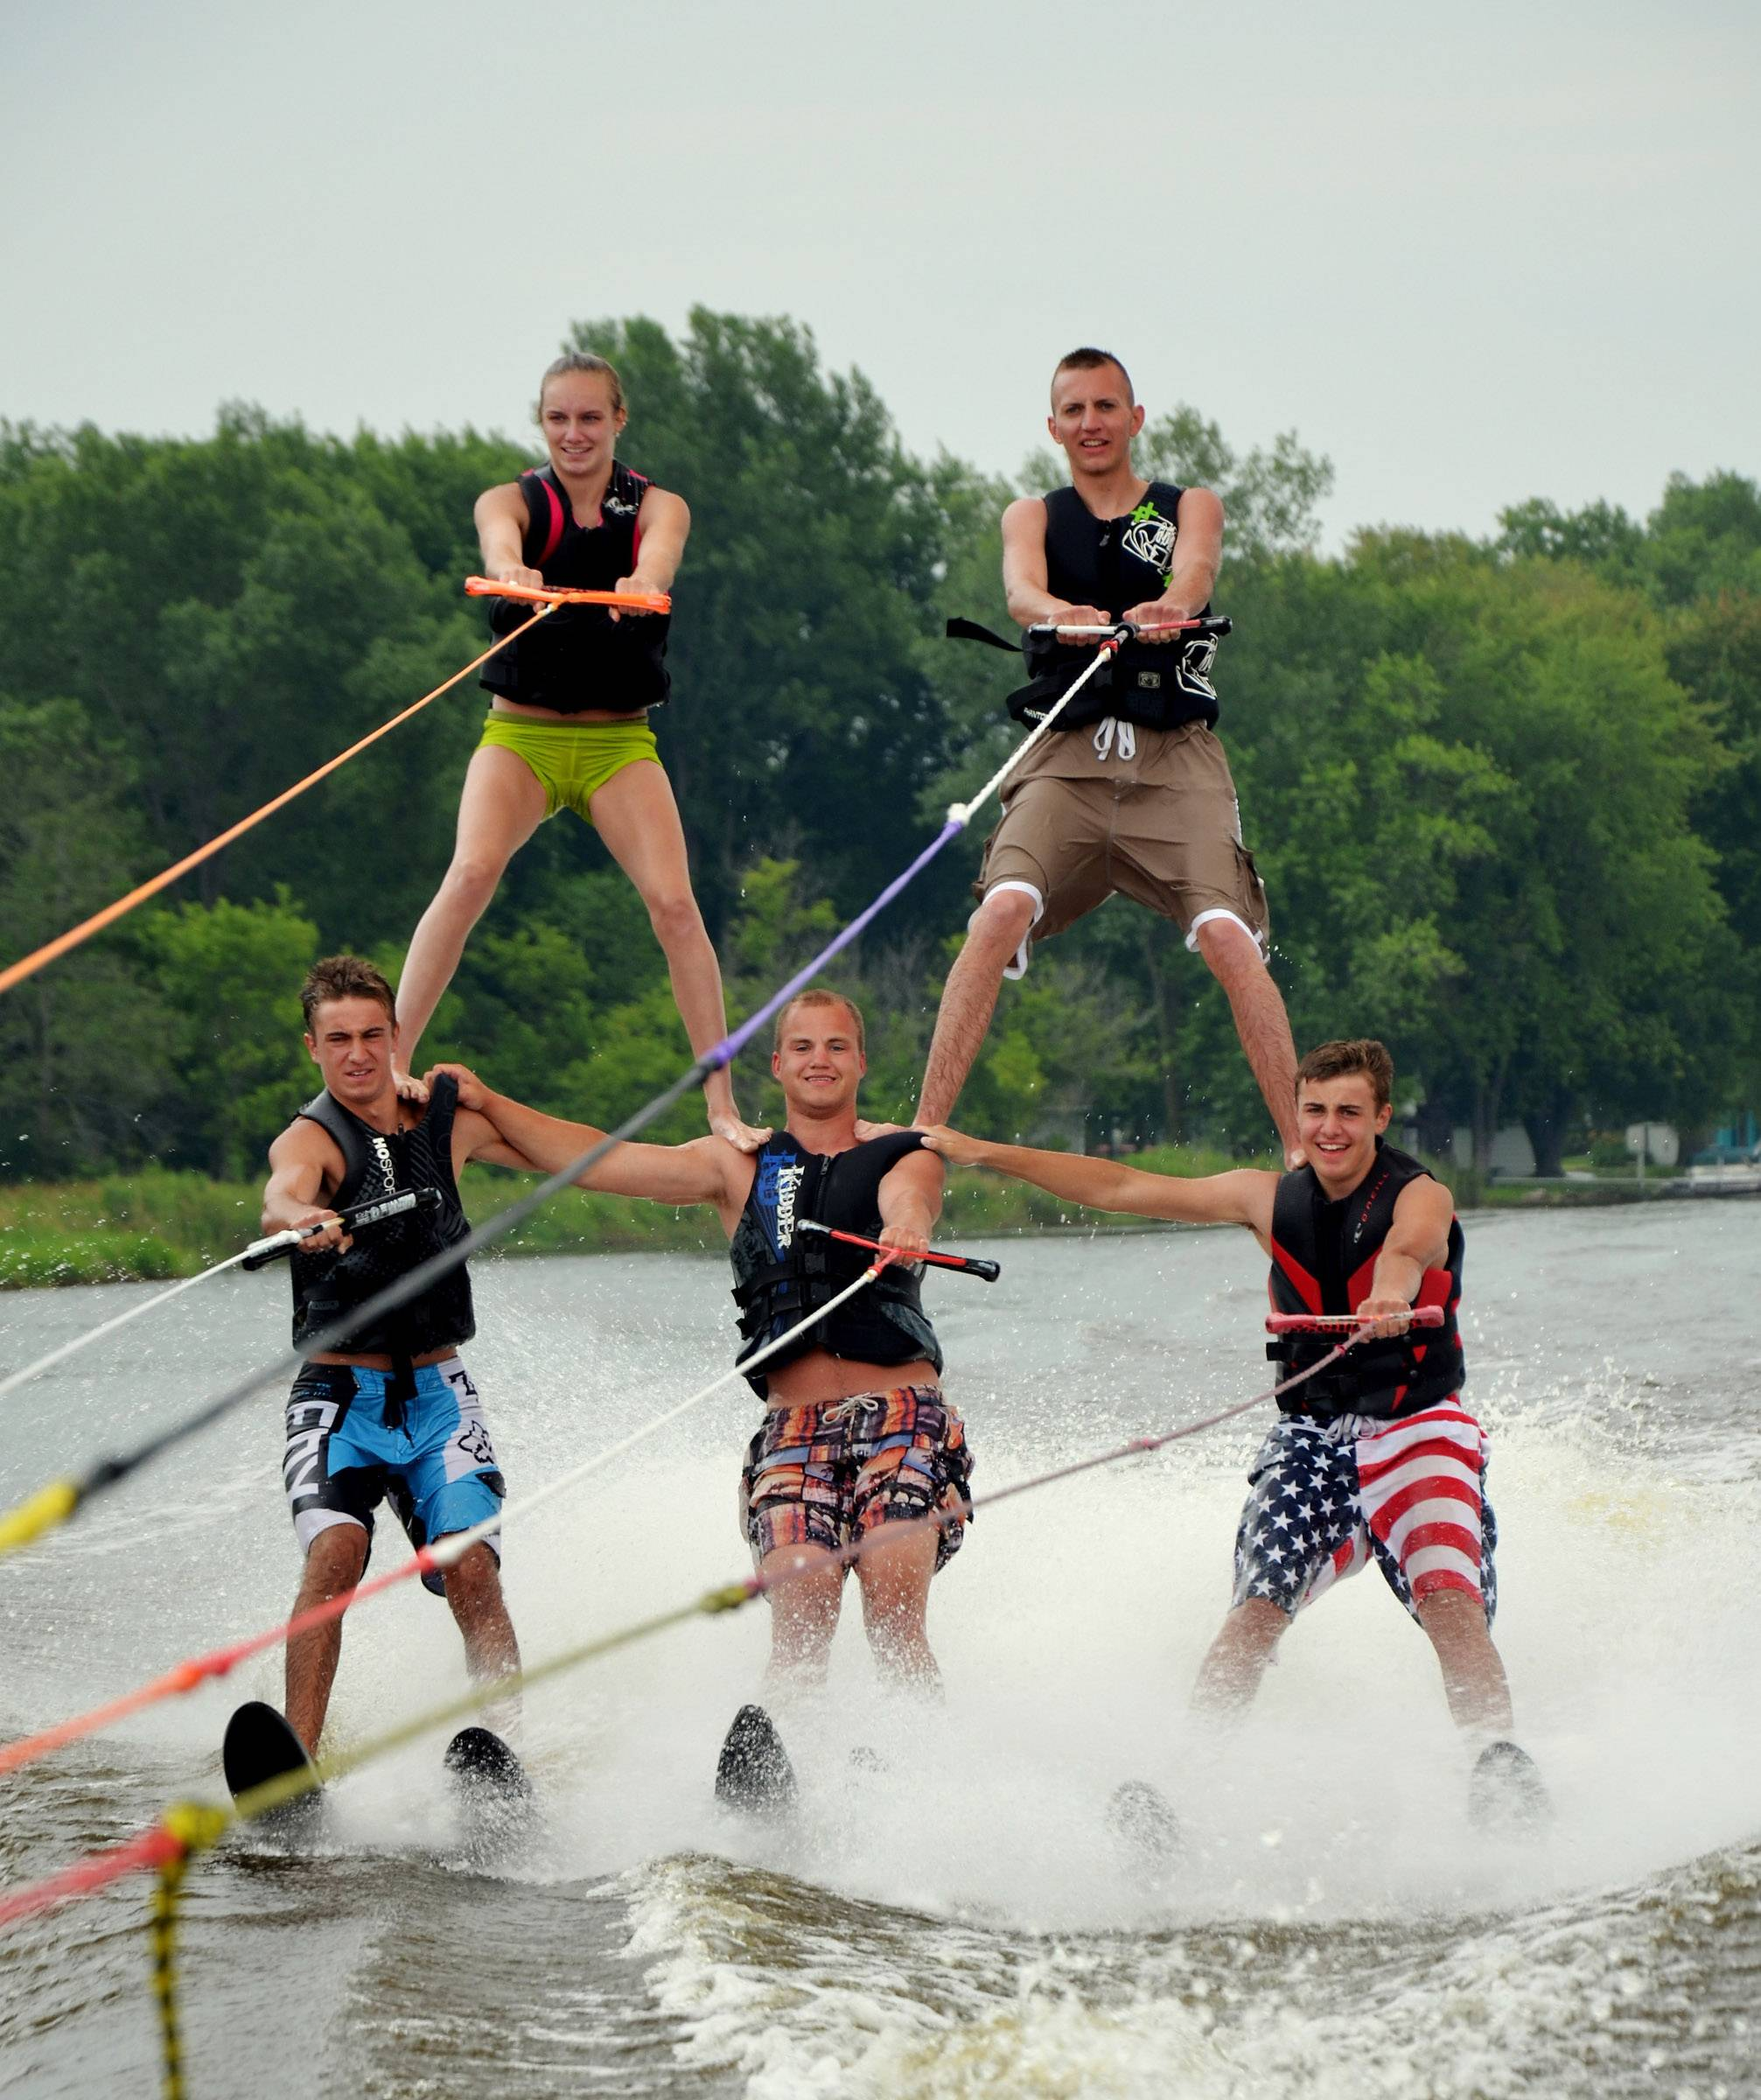 Friends Alex Tinaglia, Jimmy Tinaglia, Nick Tinaglia, Connor Solum and Mike Kintzle form a five-man pyramid on water skis on their second attempt ever. It was quite a sight in Princeton, Wisconsin over the Fourth of July weekend.